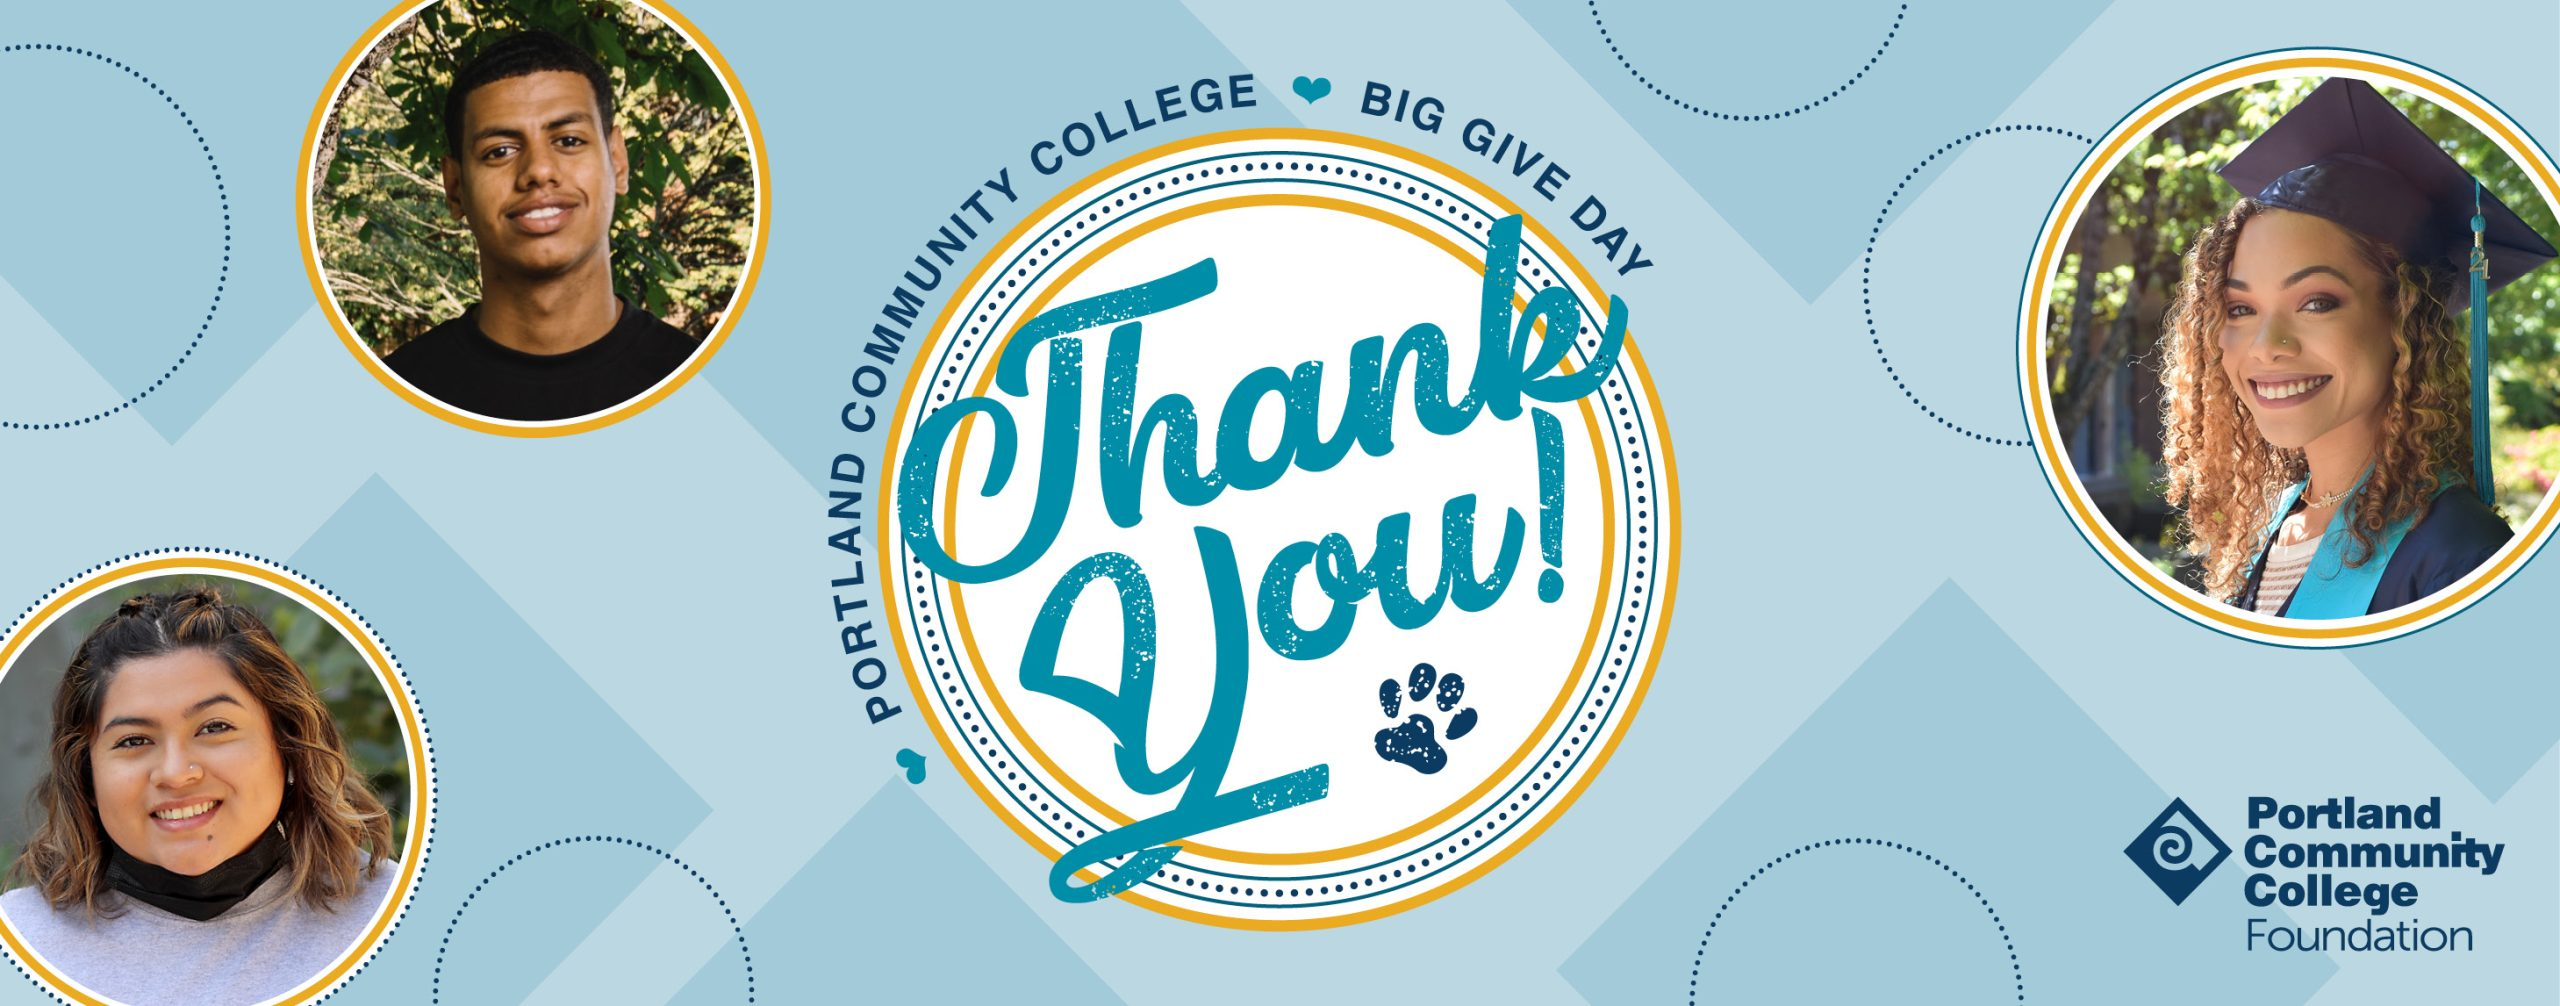 Thank you for supporting Big Give Day